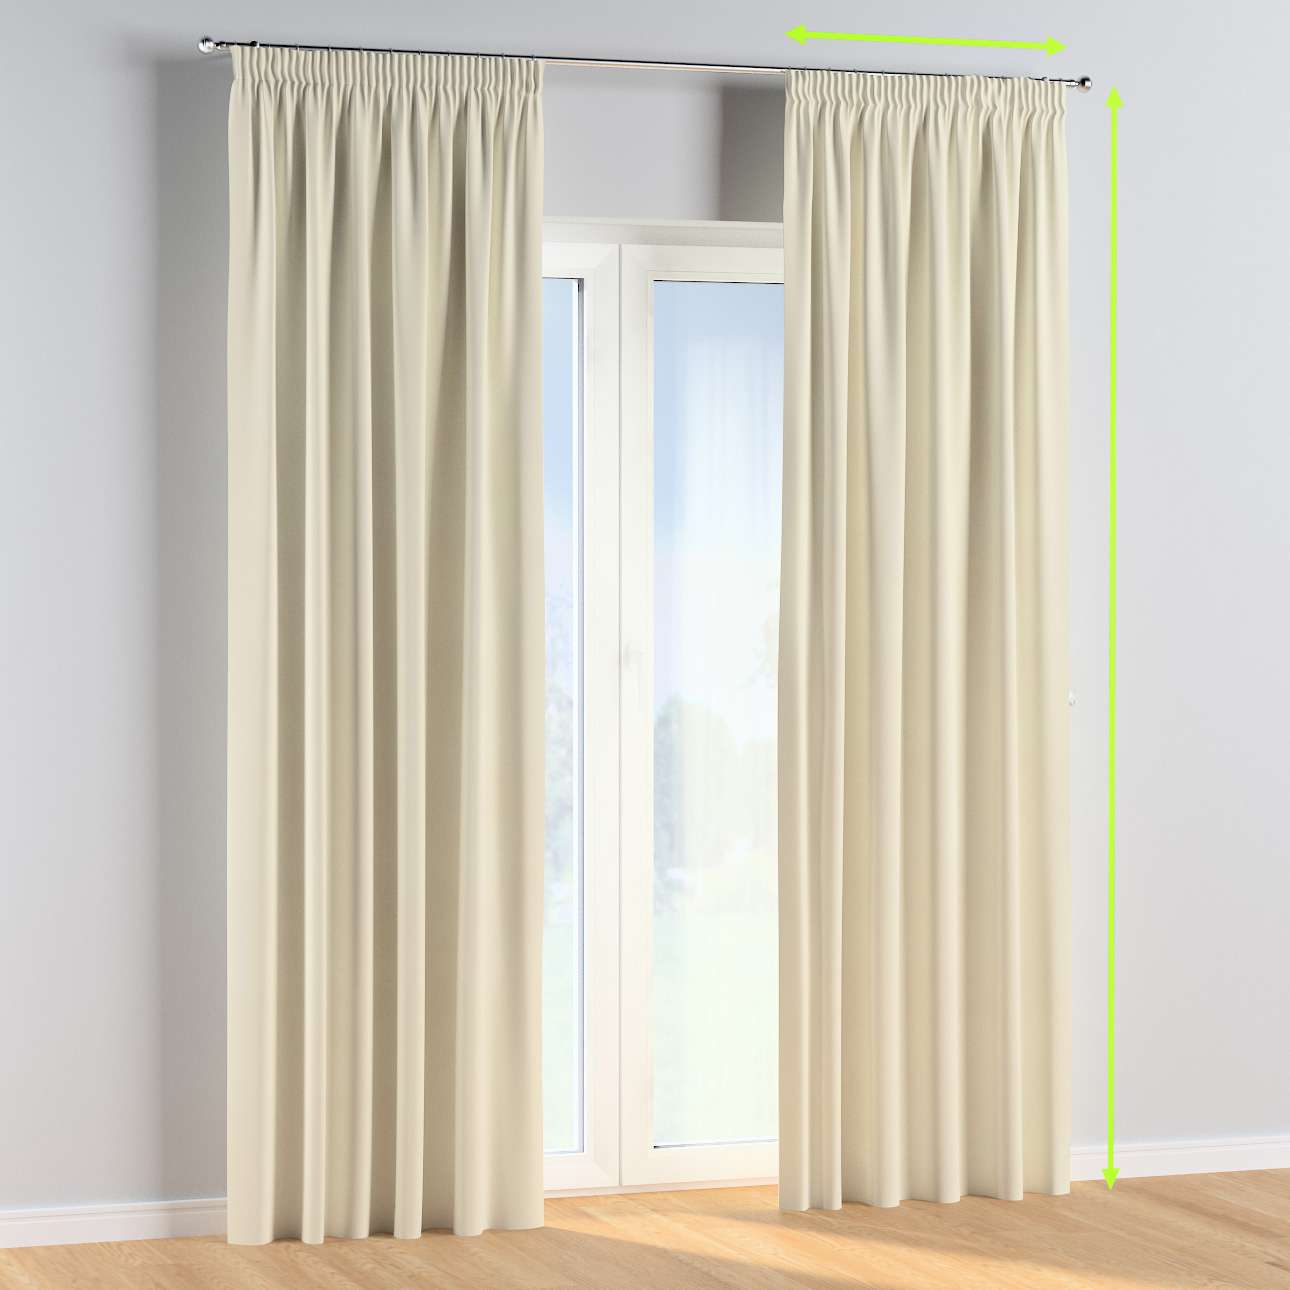 Pencil pleat curtains in collection Posh Velvet, fabric: 704-10